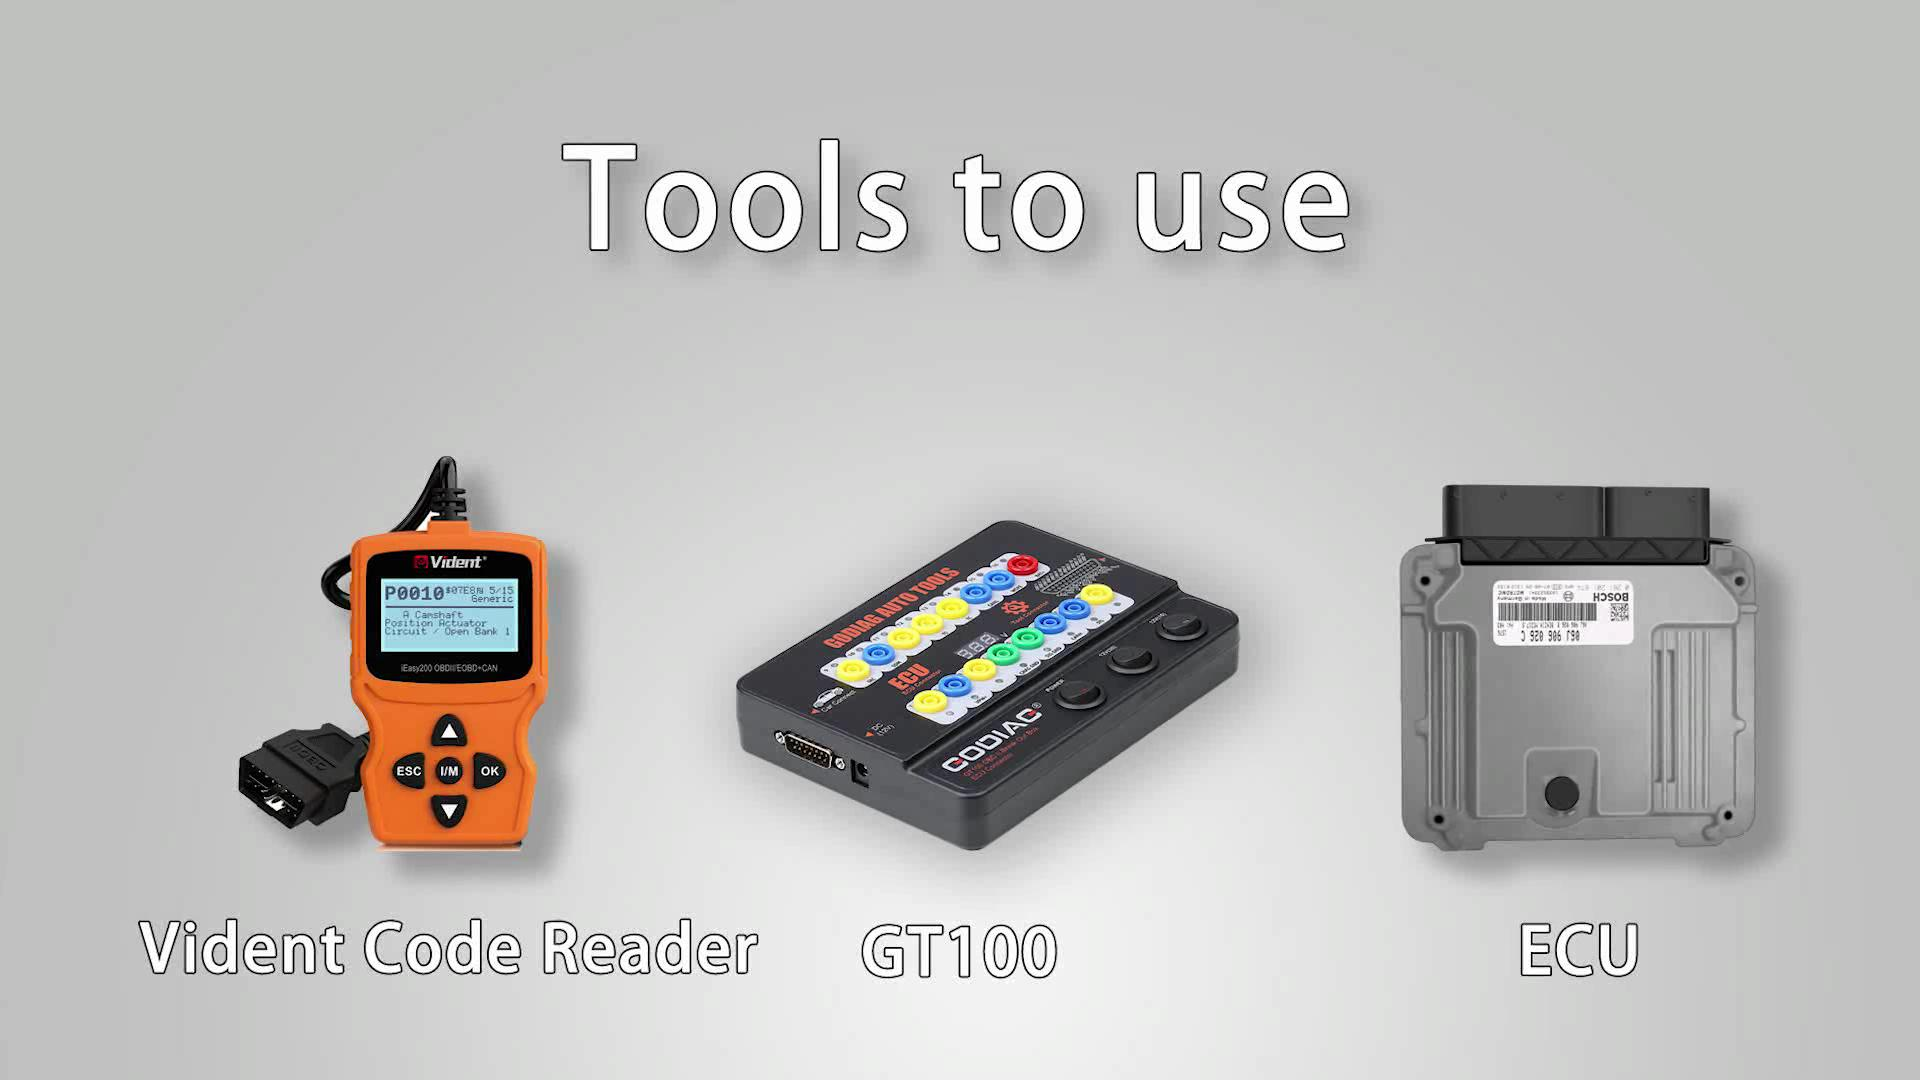 use-godiag-gt100-with-vident-code-reader-01